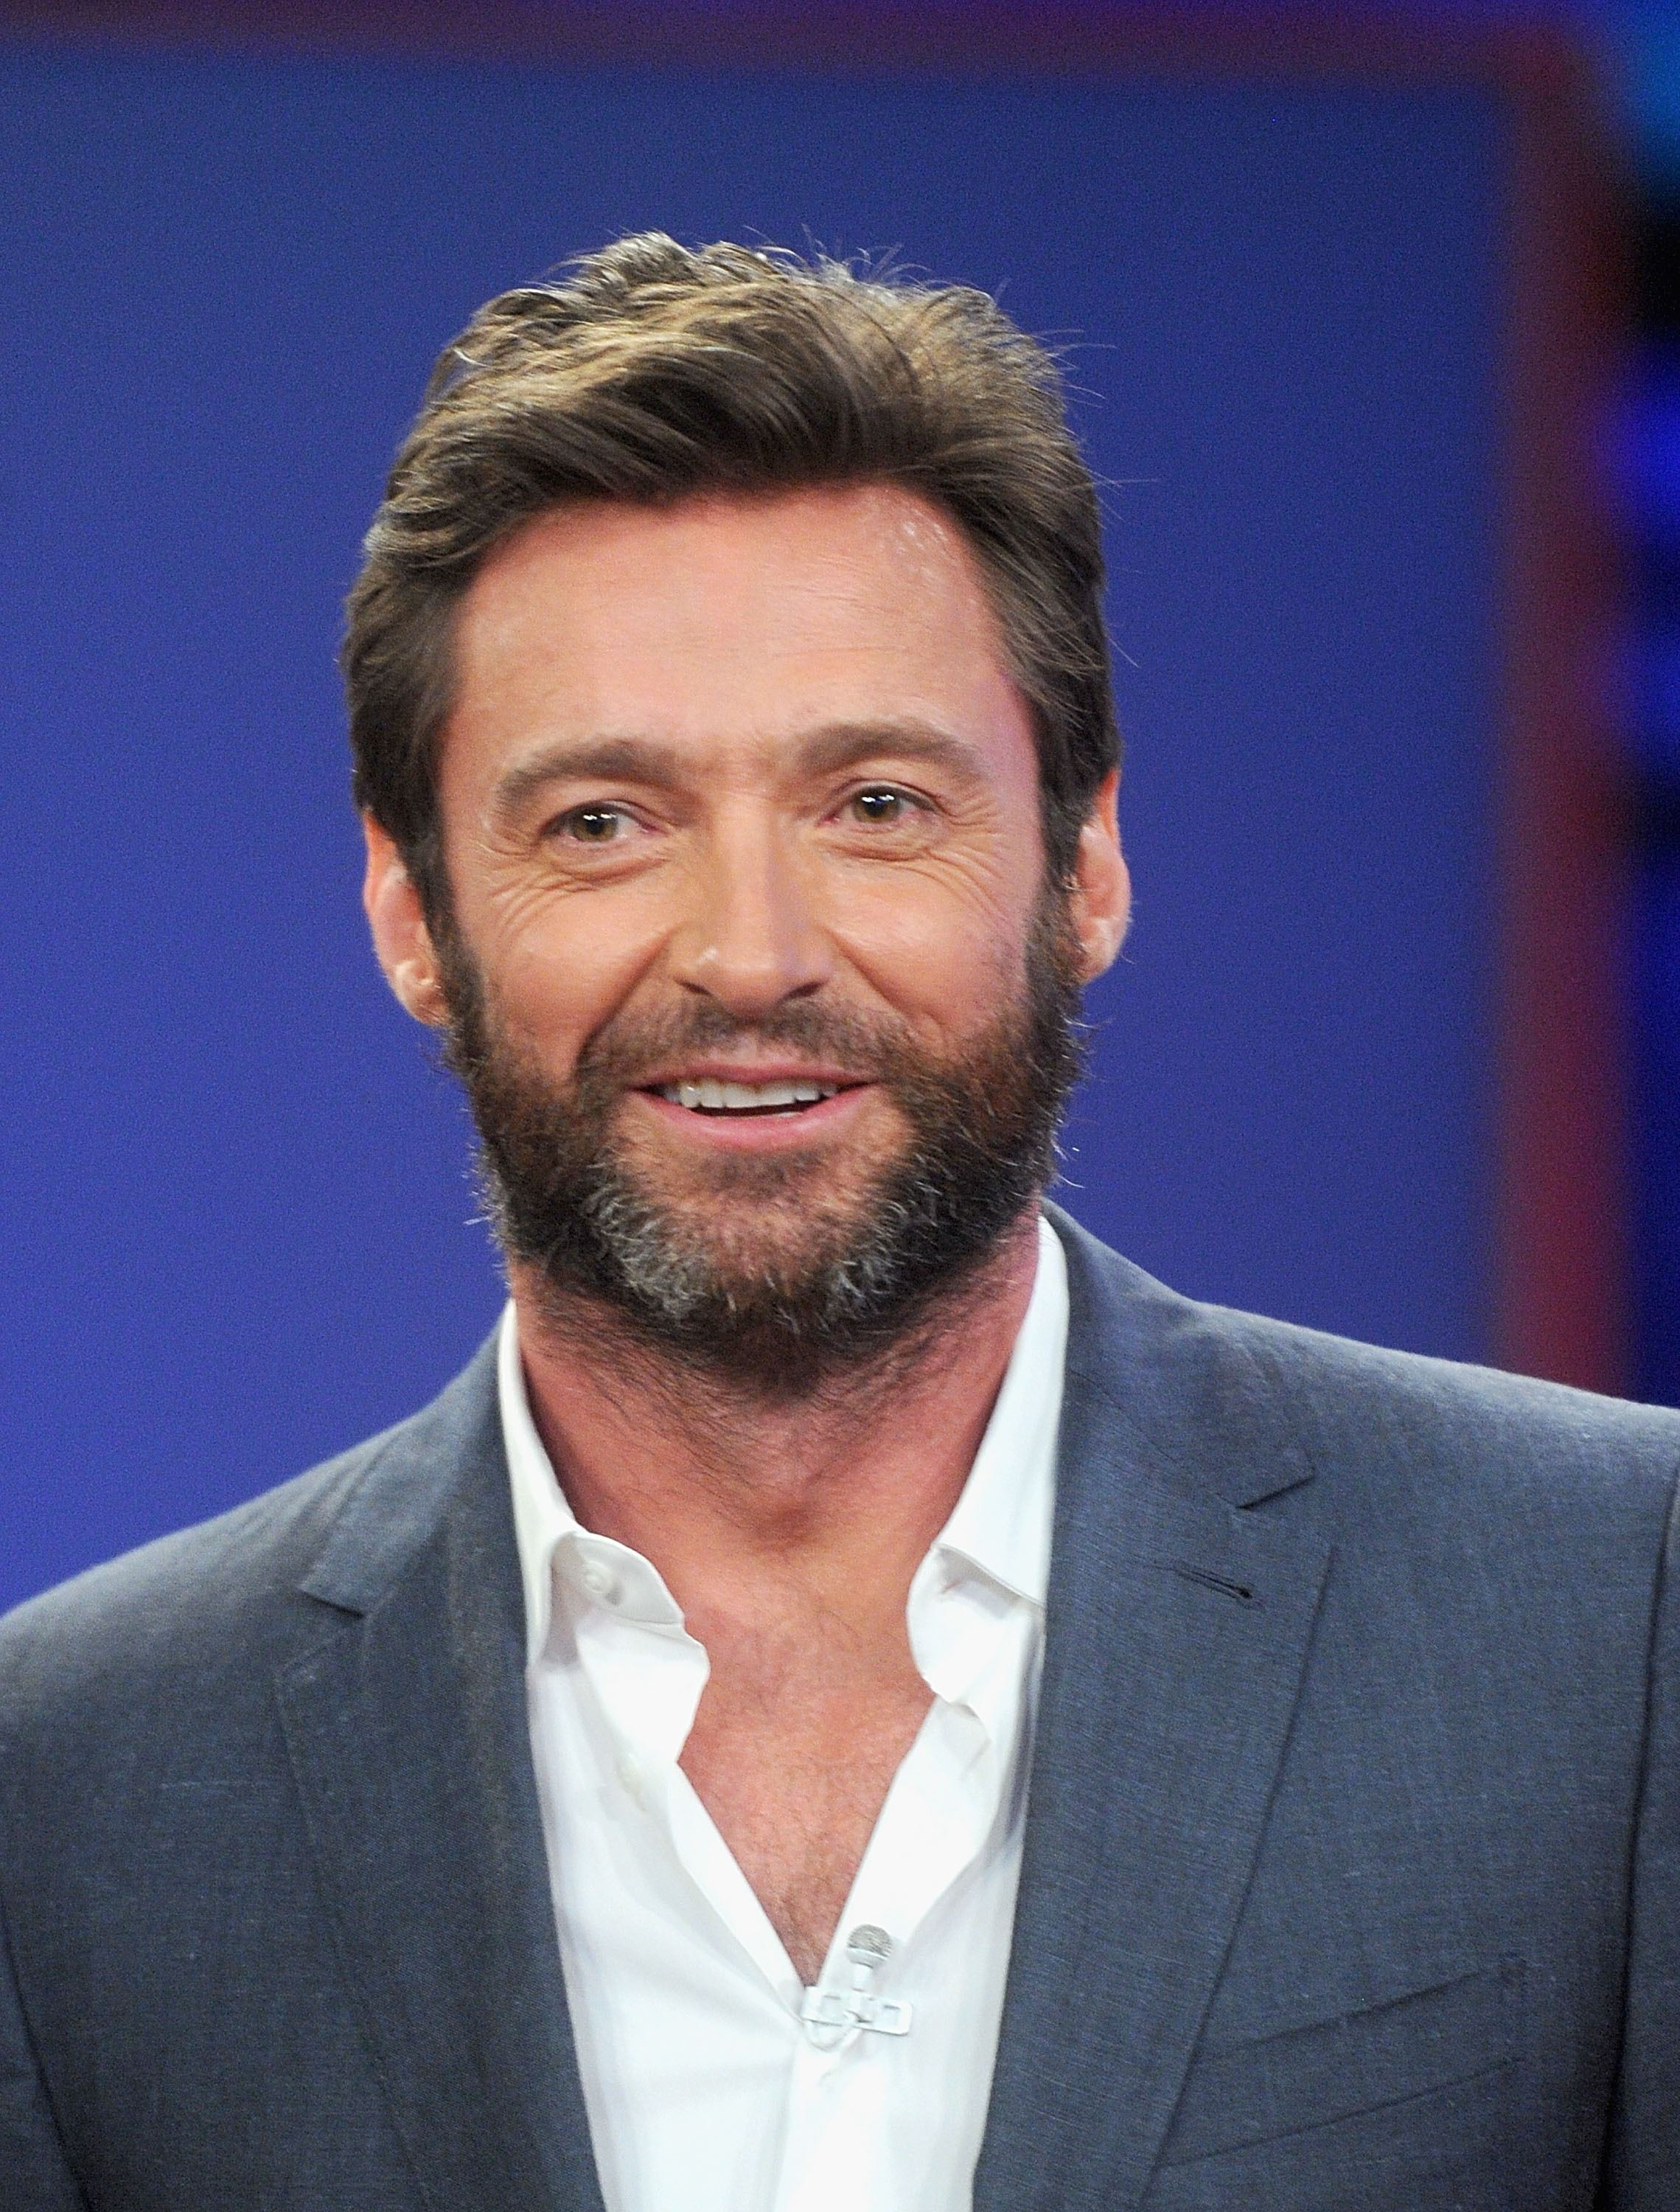 Hugh Jackman gives $10,000 to the Montreal Children's Hospital Foundation after X-Men wraps up shooting in the city